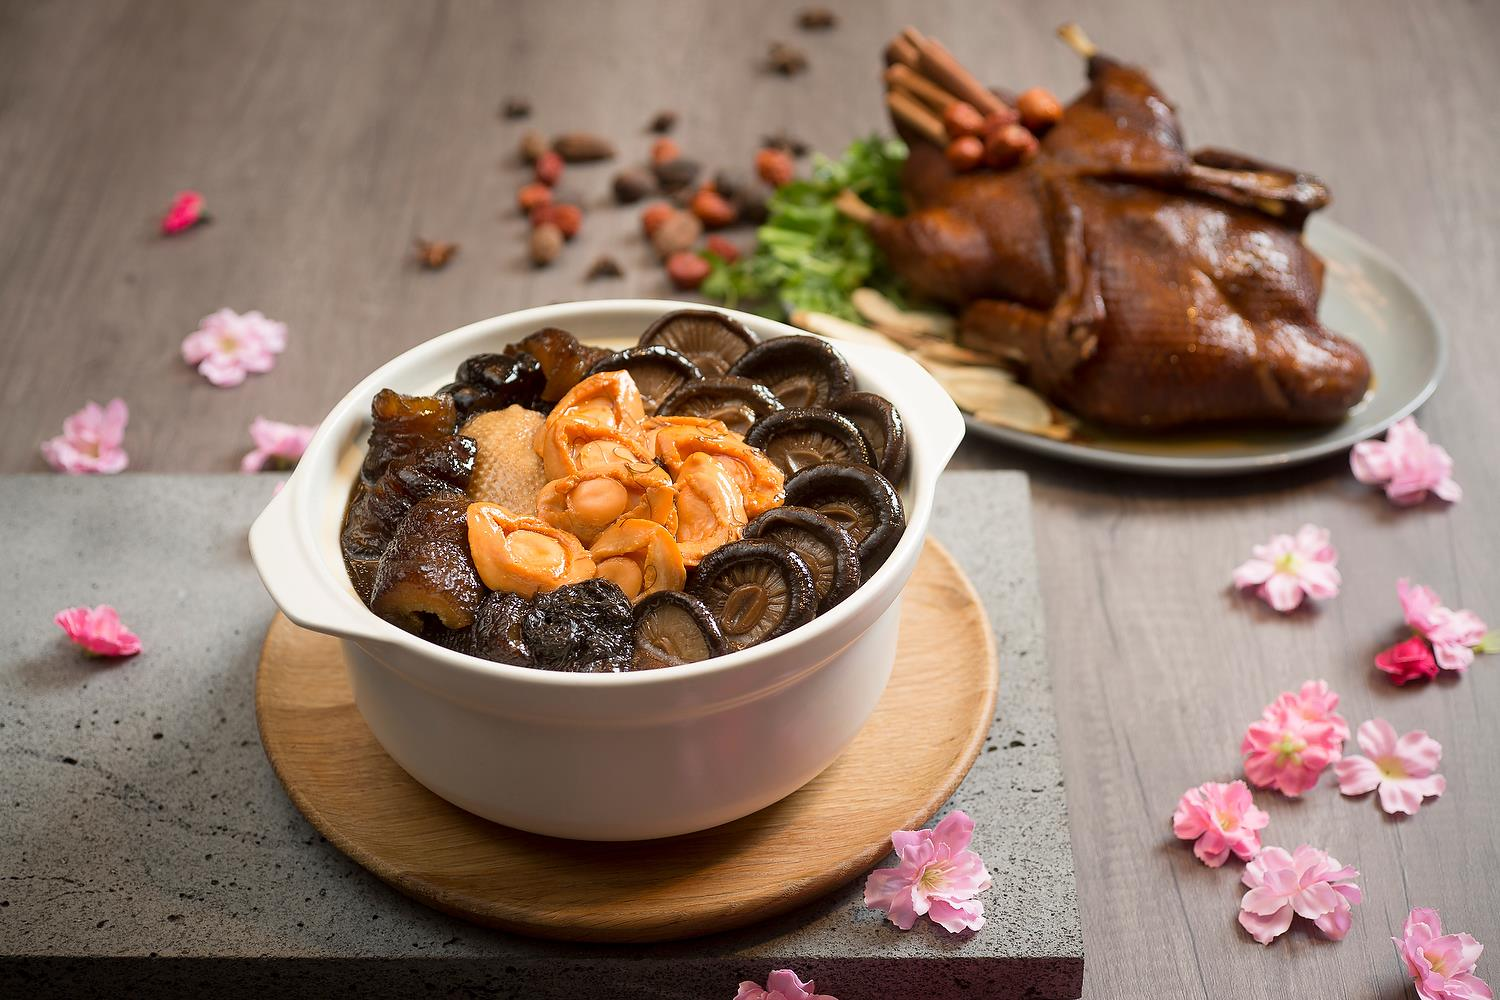 Sumptuous Dining Lunar New Year Buffet | Seasonal Tastes at Westin Hotels & Resorts